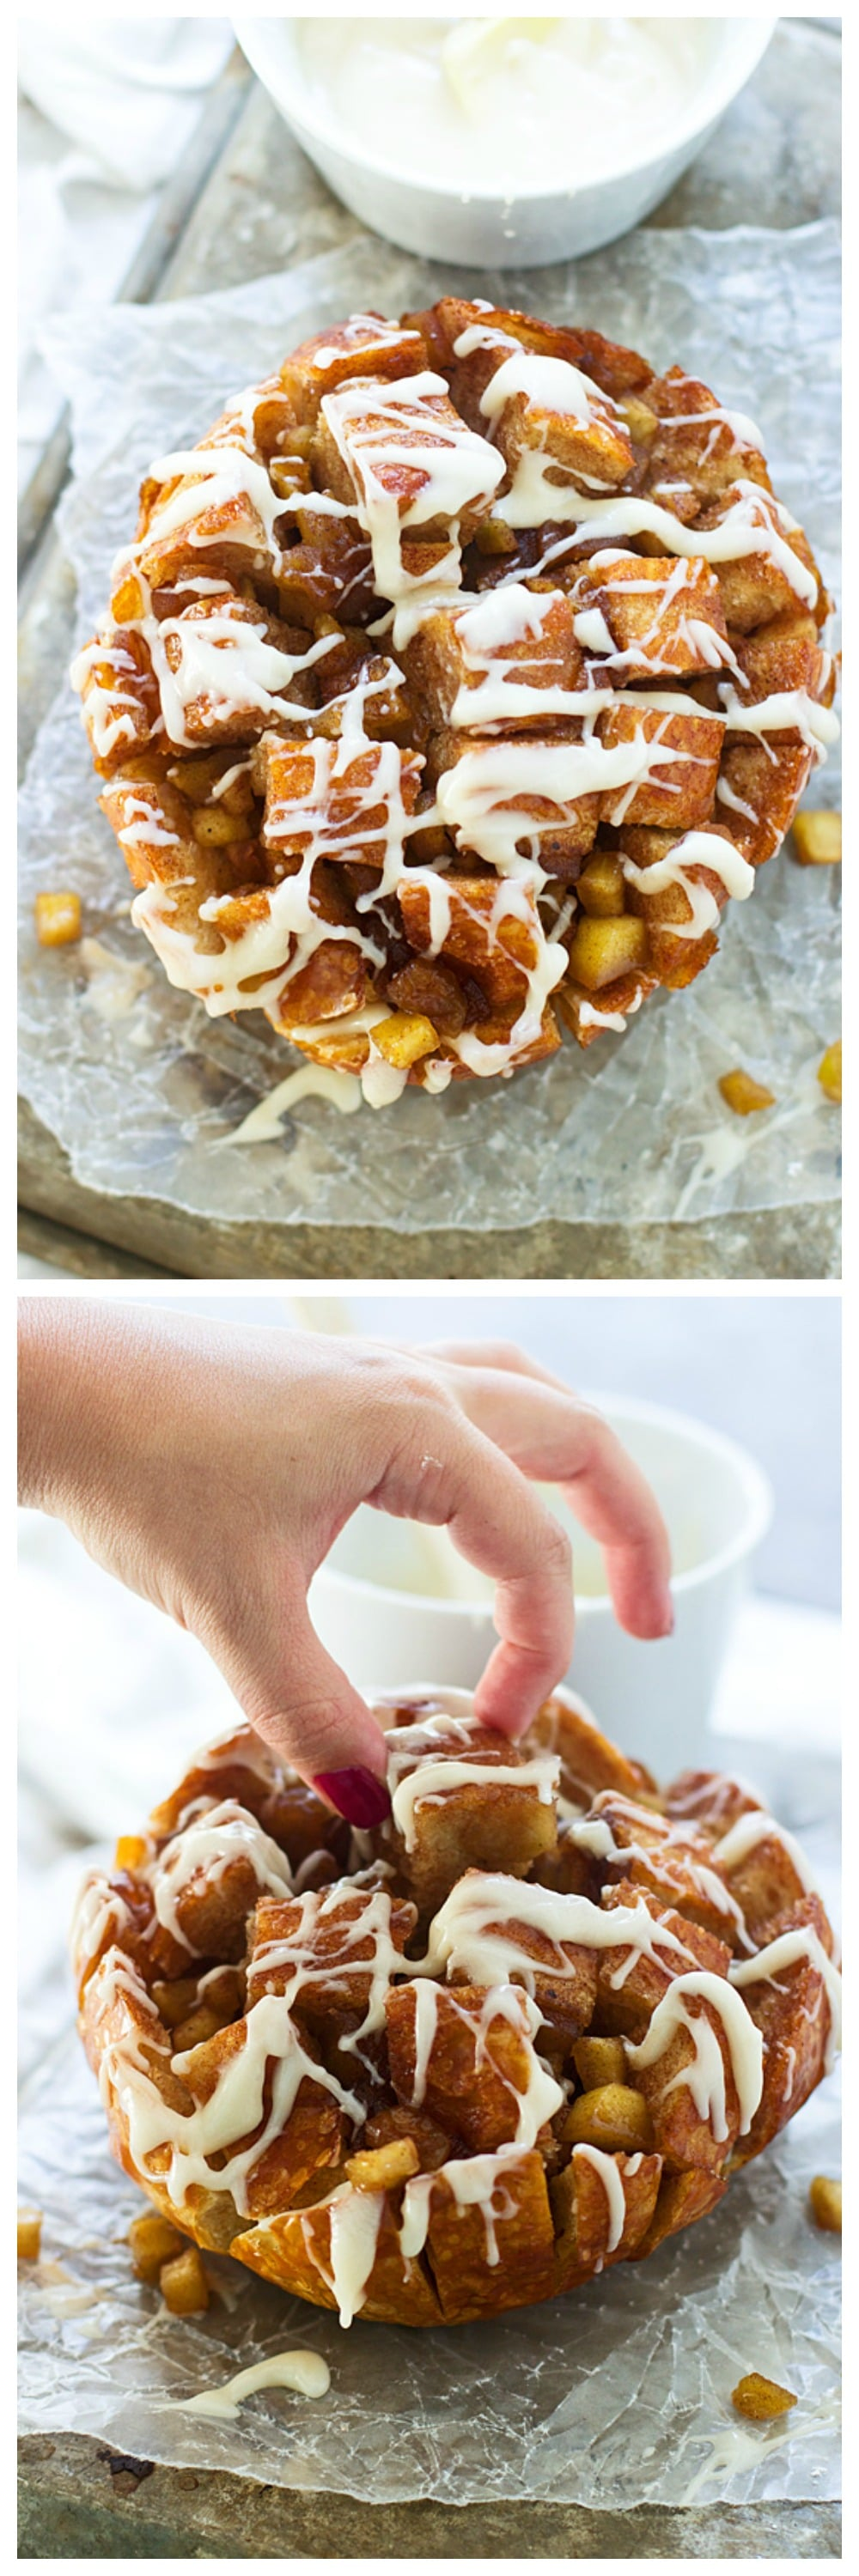 Brown Butter Caramel Apple Pull-Apart Bread with Cream Cheese Icing - Tastes like a mix between a sticky bun and a cinnamon roll, but is SO much easier to make!